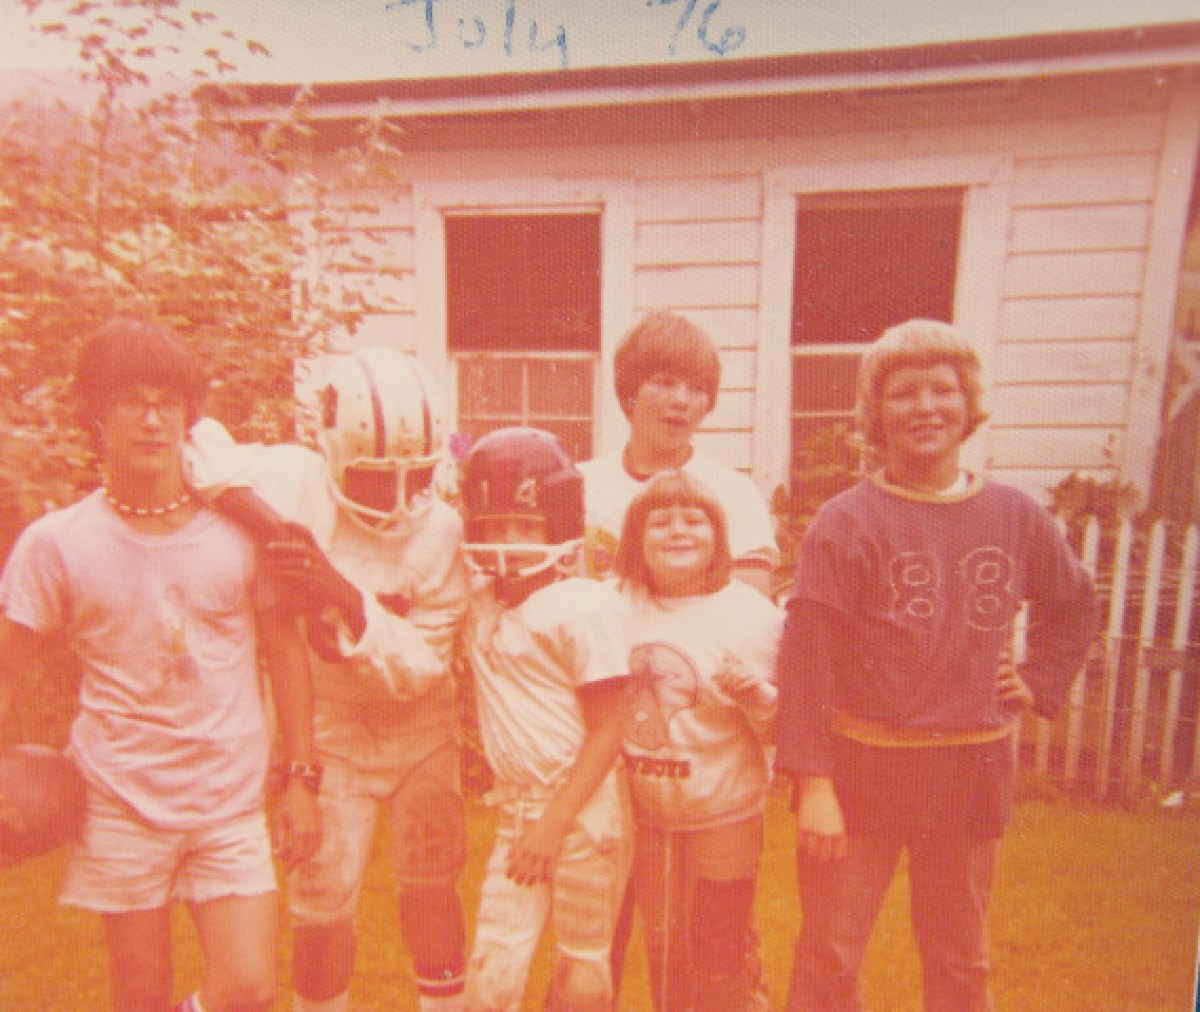 Days of Hope or Despair: White Gen X Boys playing football 1970s